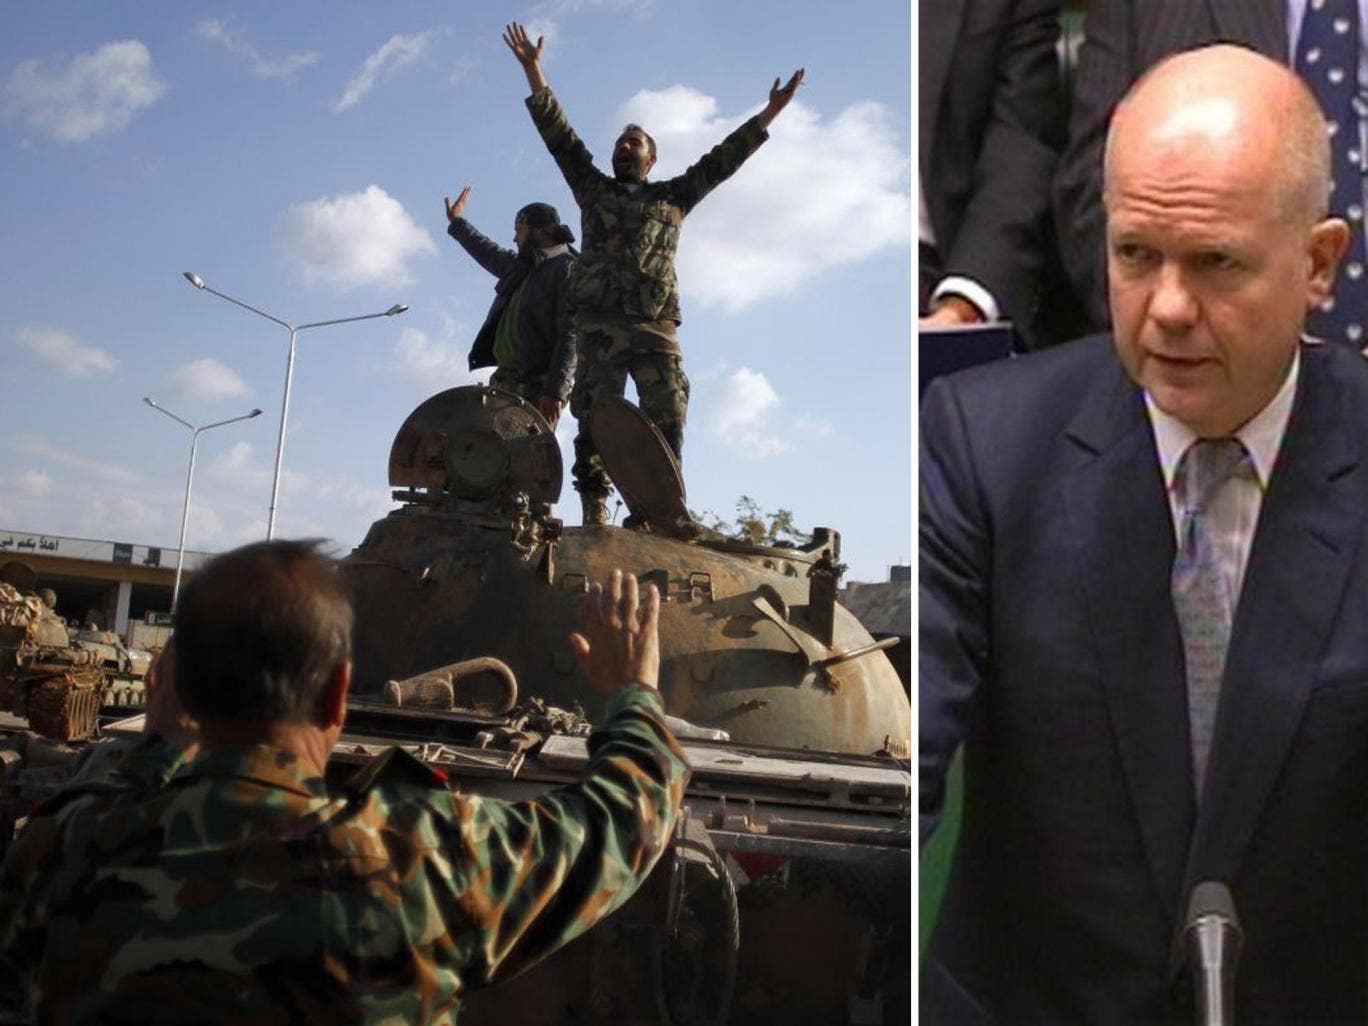 Syrian rebels celebrate the victory on top of a tank they took after storming a military base in Aleppo yesterday. William Hague, left, said the UK recognised the rebels as the 'sole legitimate representative' of the Syrian people today